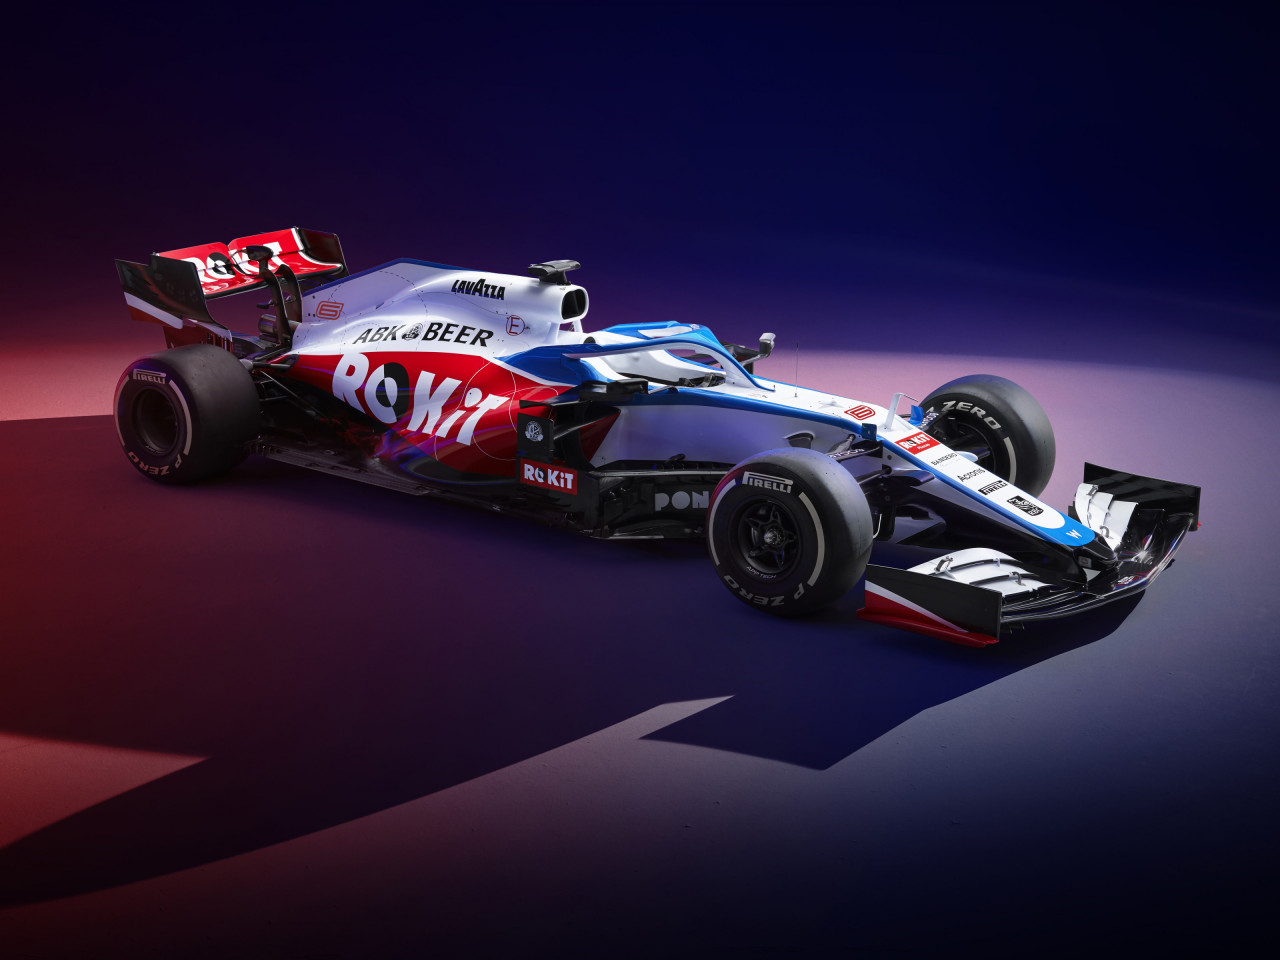 Williams F1 FW43 2020 wallpaper 1280x960